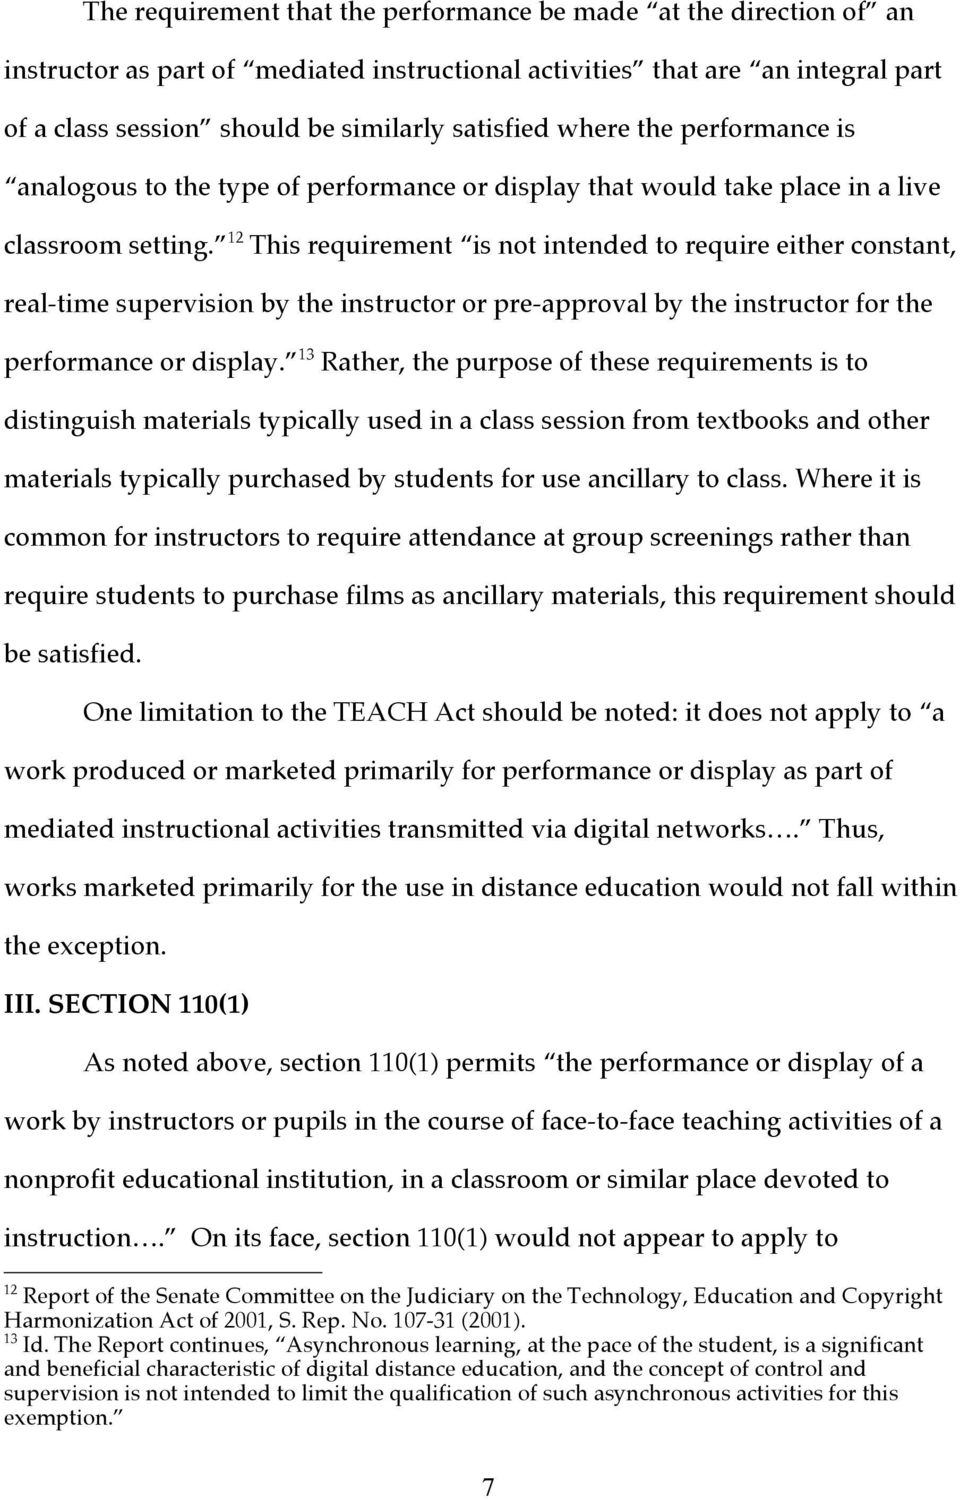 12 This requirement is not intended to require either constant, real-time supervision by the instructor or pre-approval by the instructor for the performance or display.